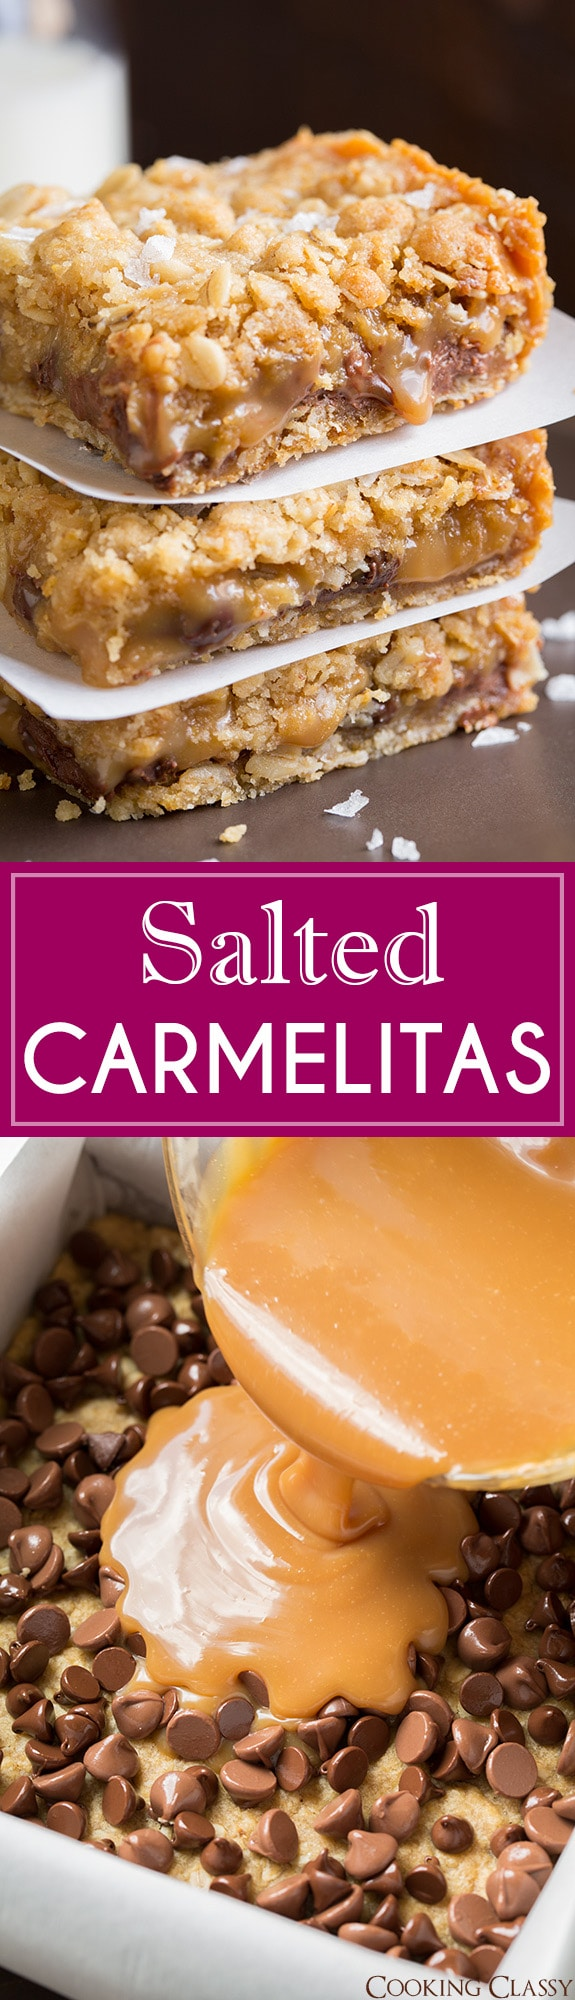 Salted Carmelitas | Cooking Classy